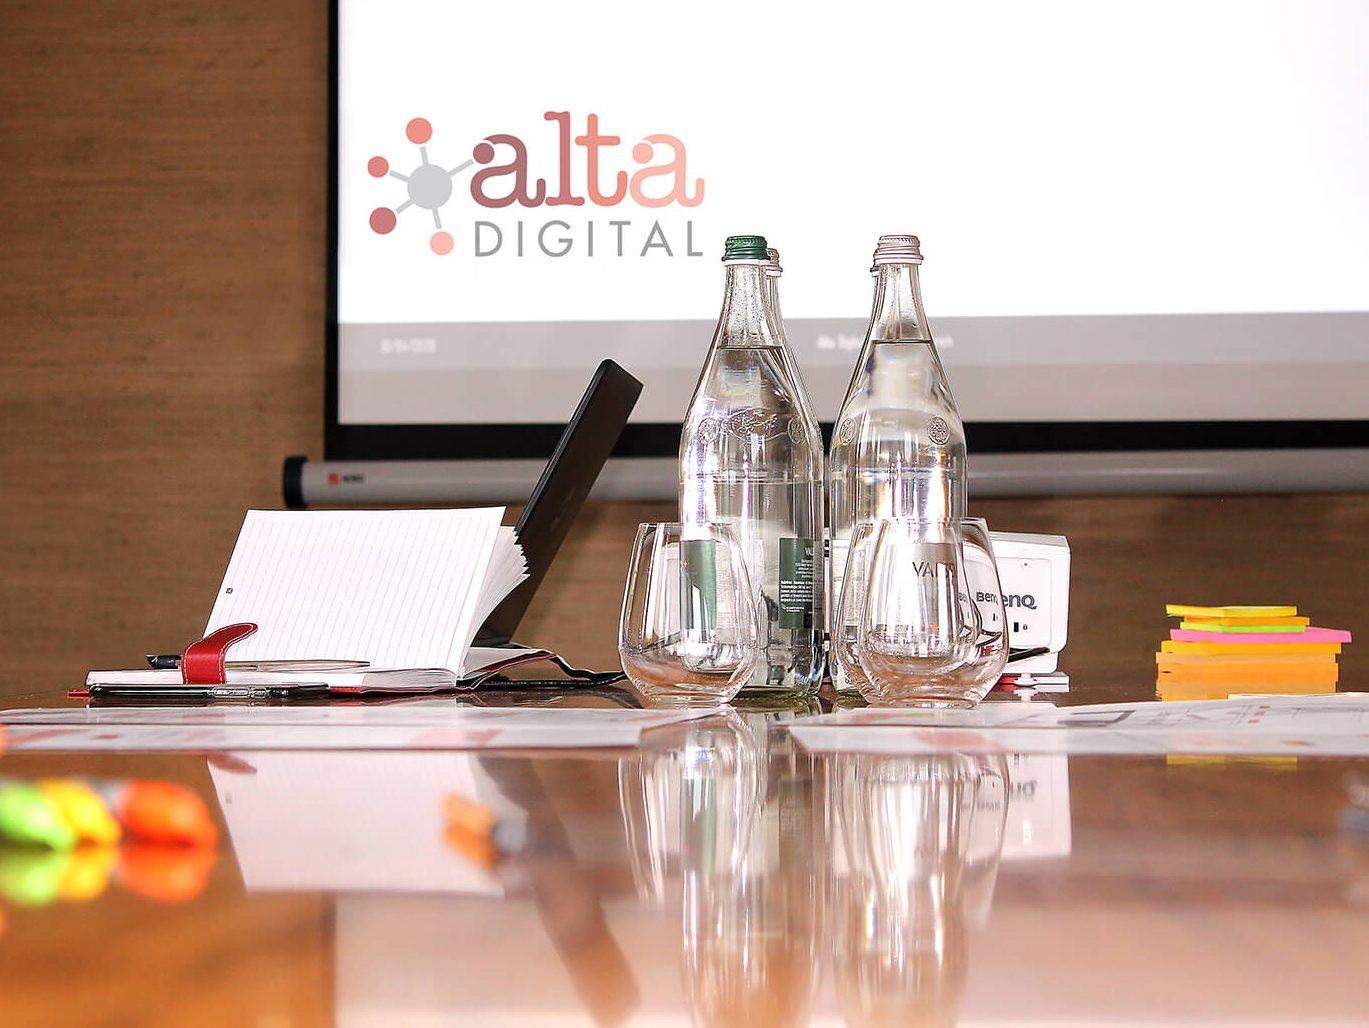 ALTA Digital governance presentation in boardroom